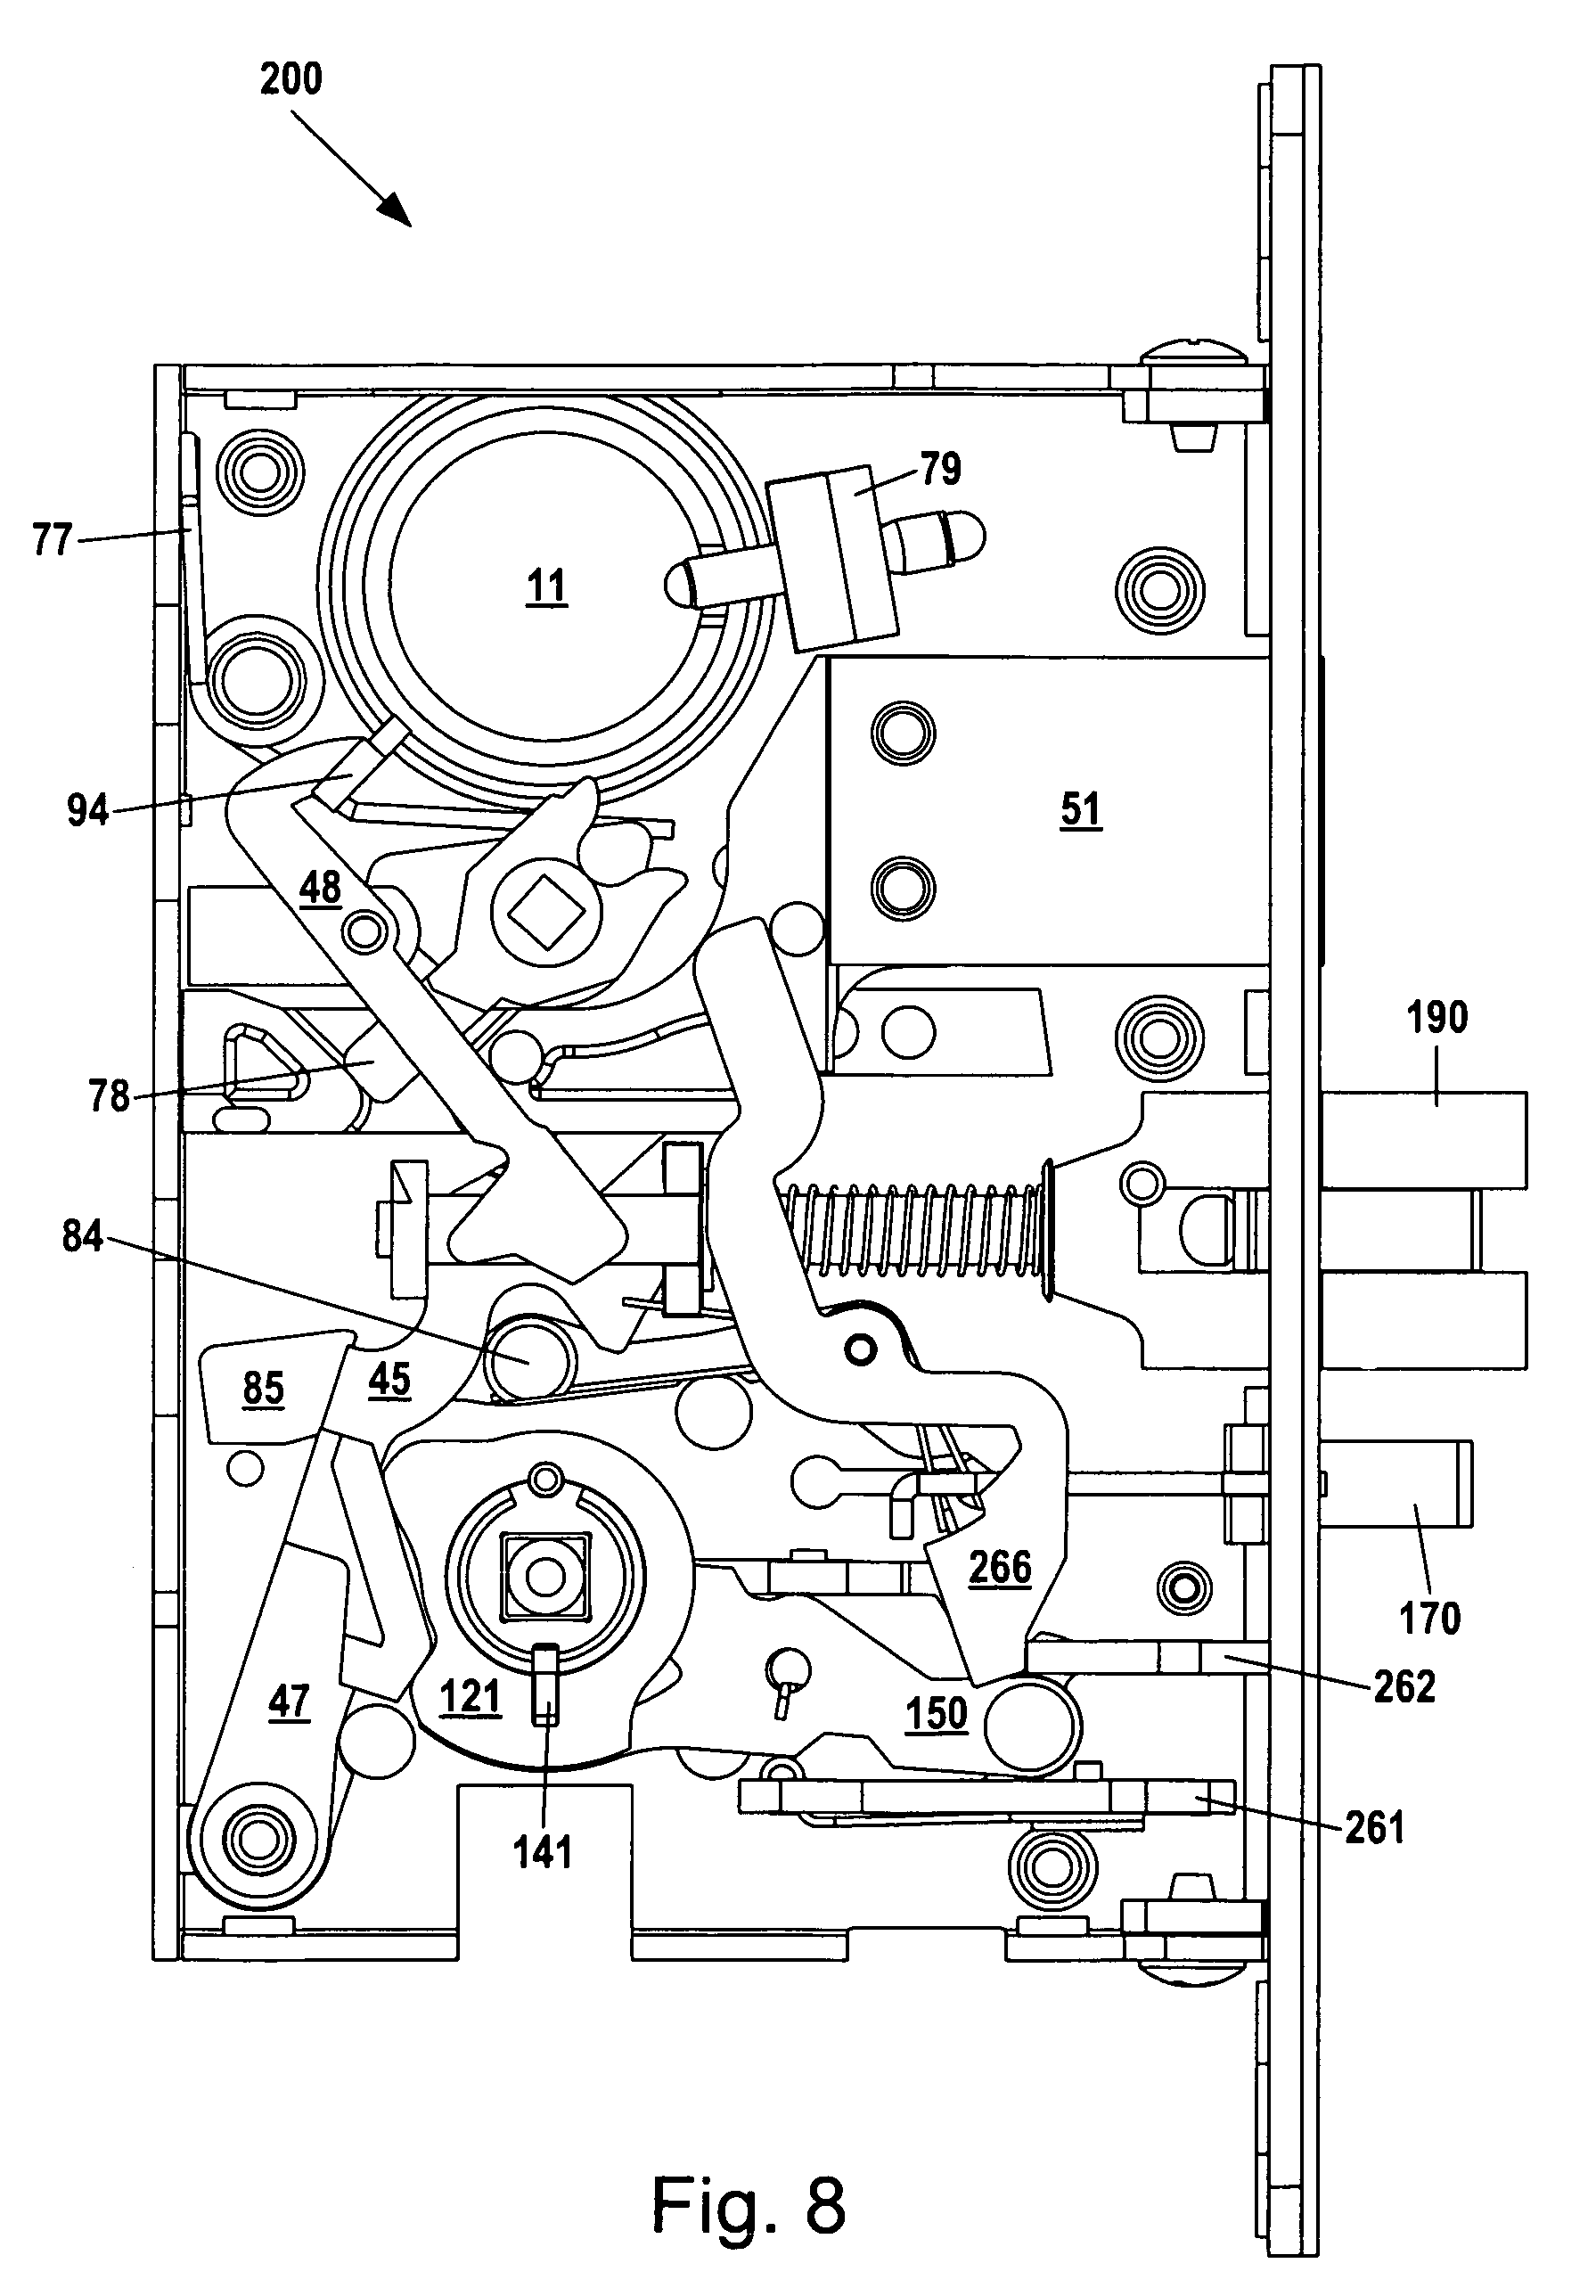 mortise lock parts diagram coil gun wiring patent us8292336 assembly google patents